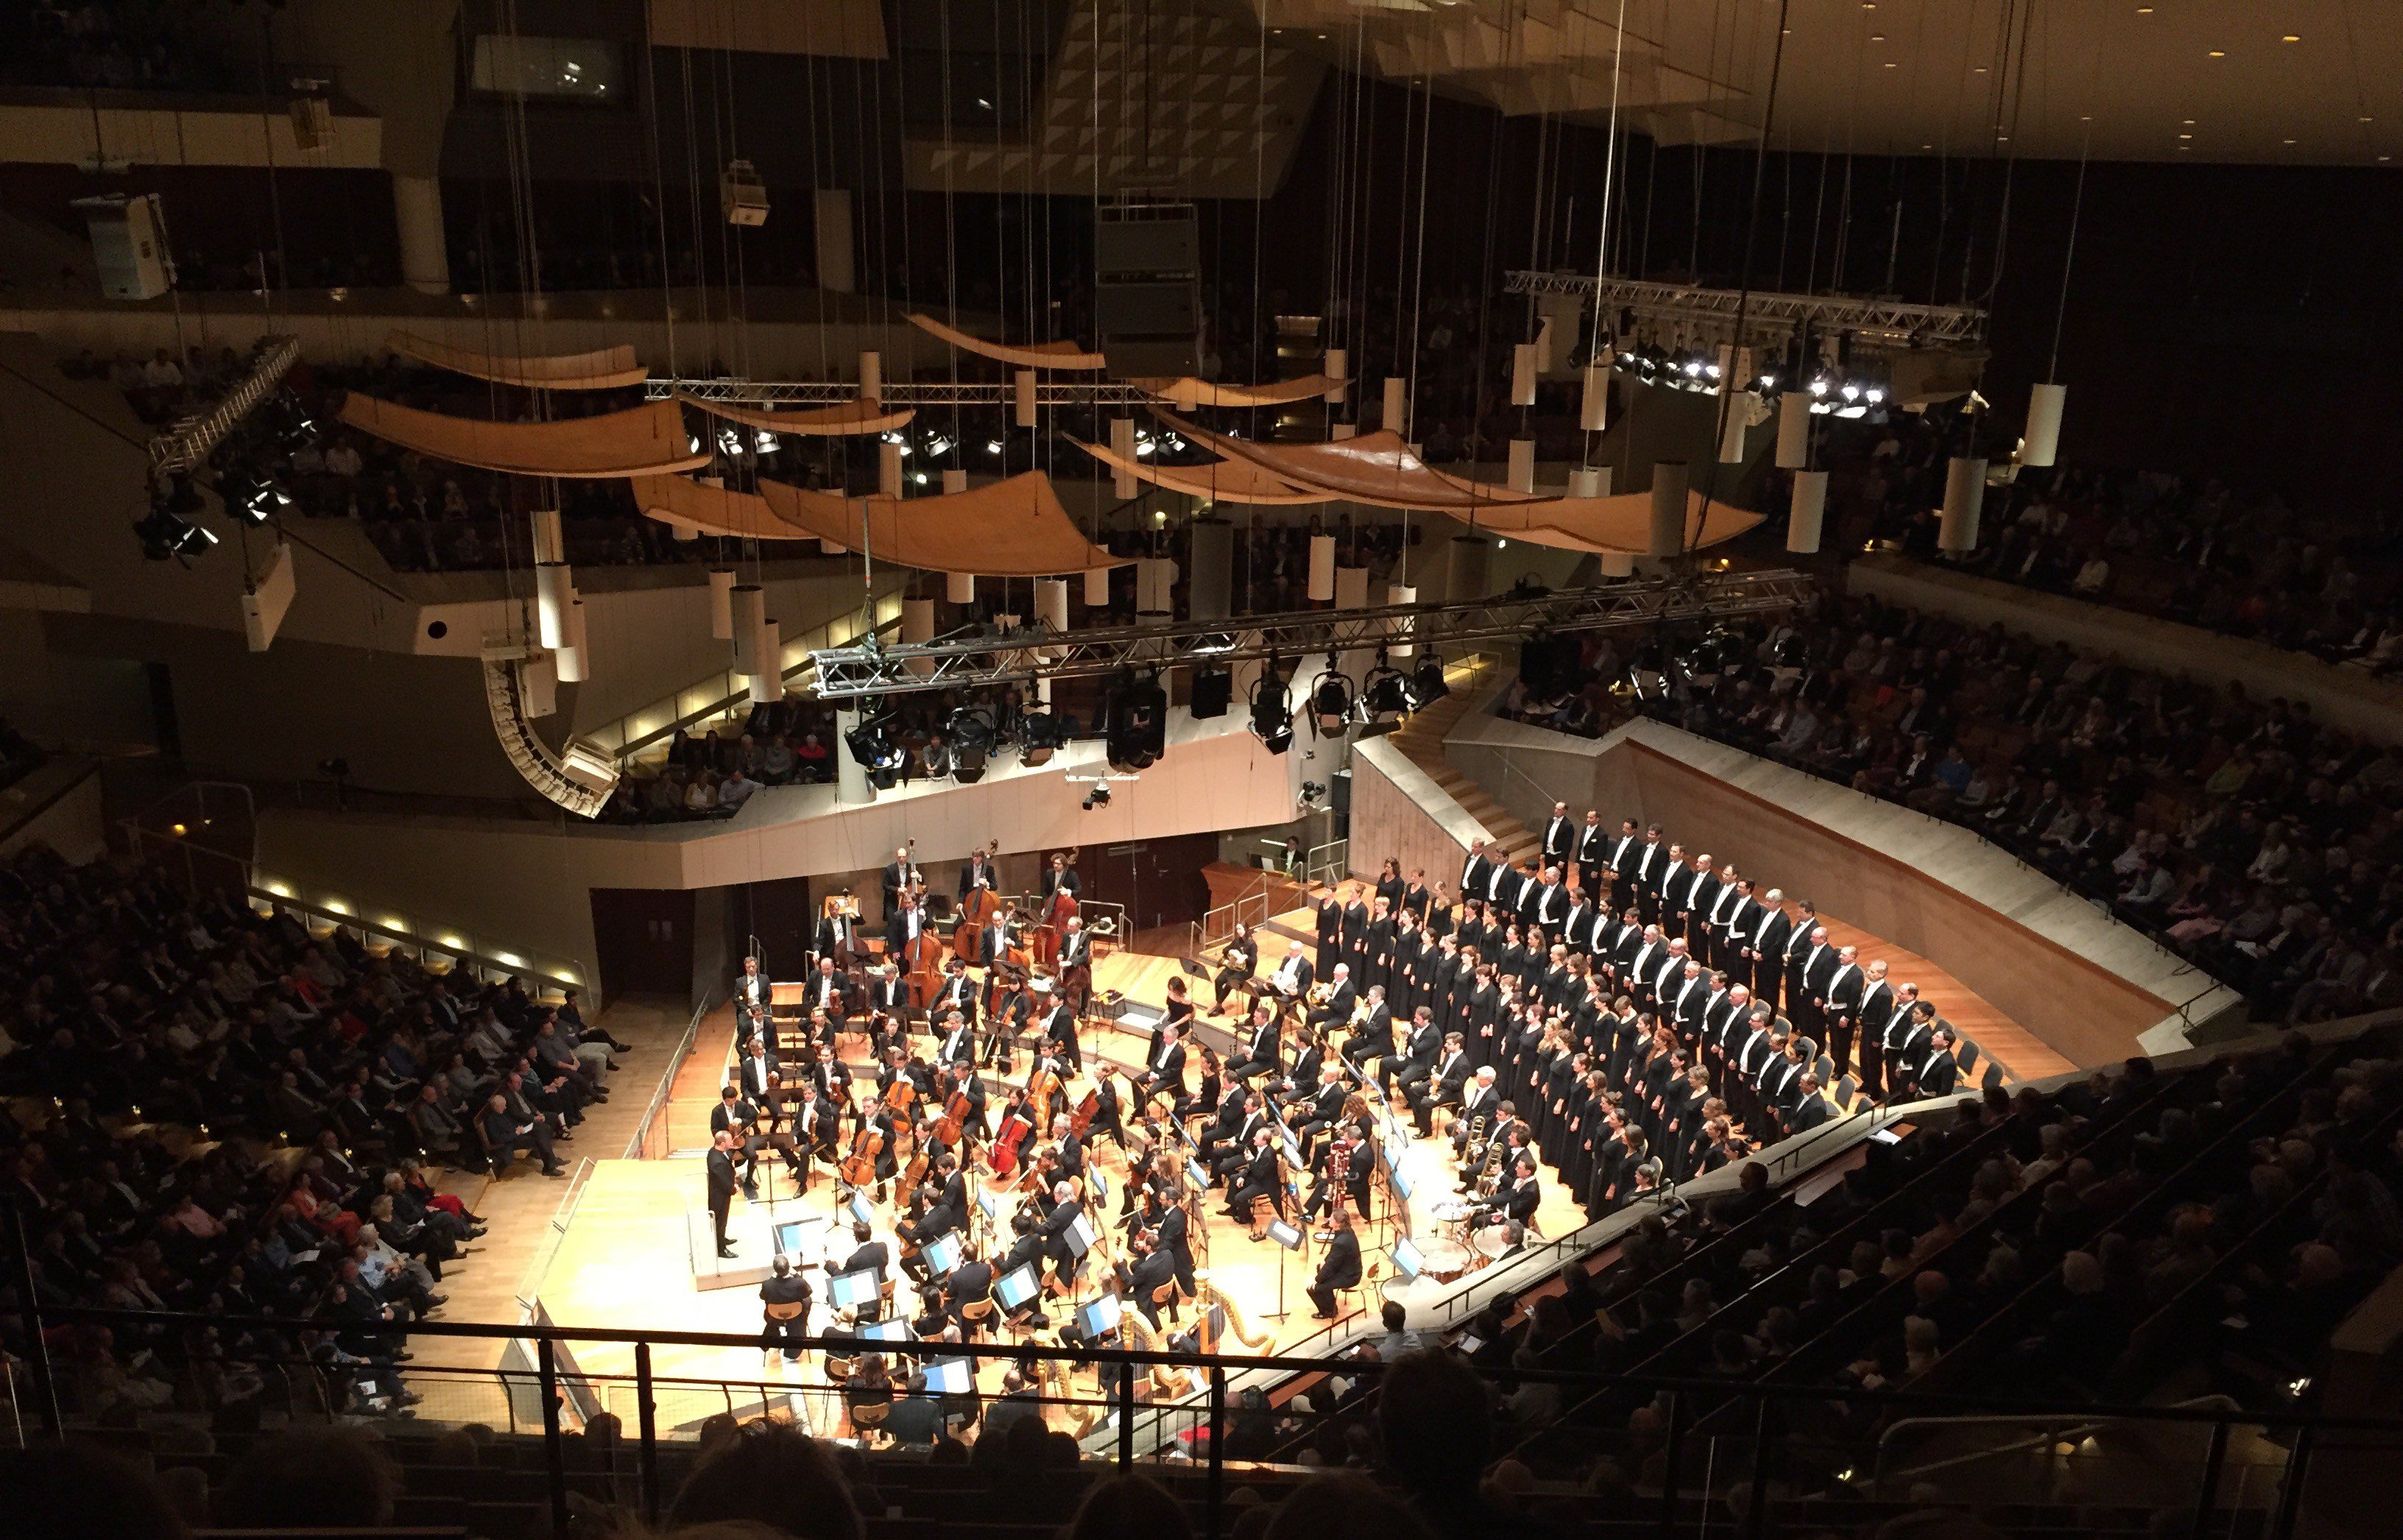 Yannick Nézet-Séguinm, The Berlin Philharmonic Orchestra, and the Rundfunkchor Berlin, Brahms German Requiem Oct 19, 2017